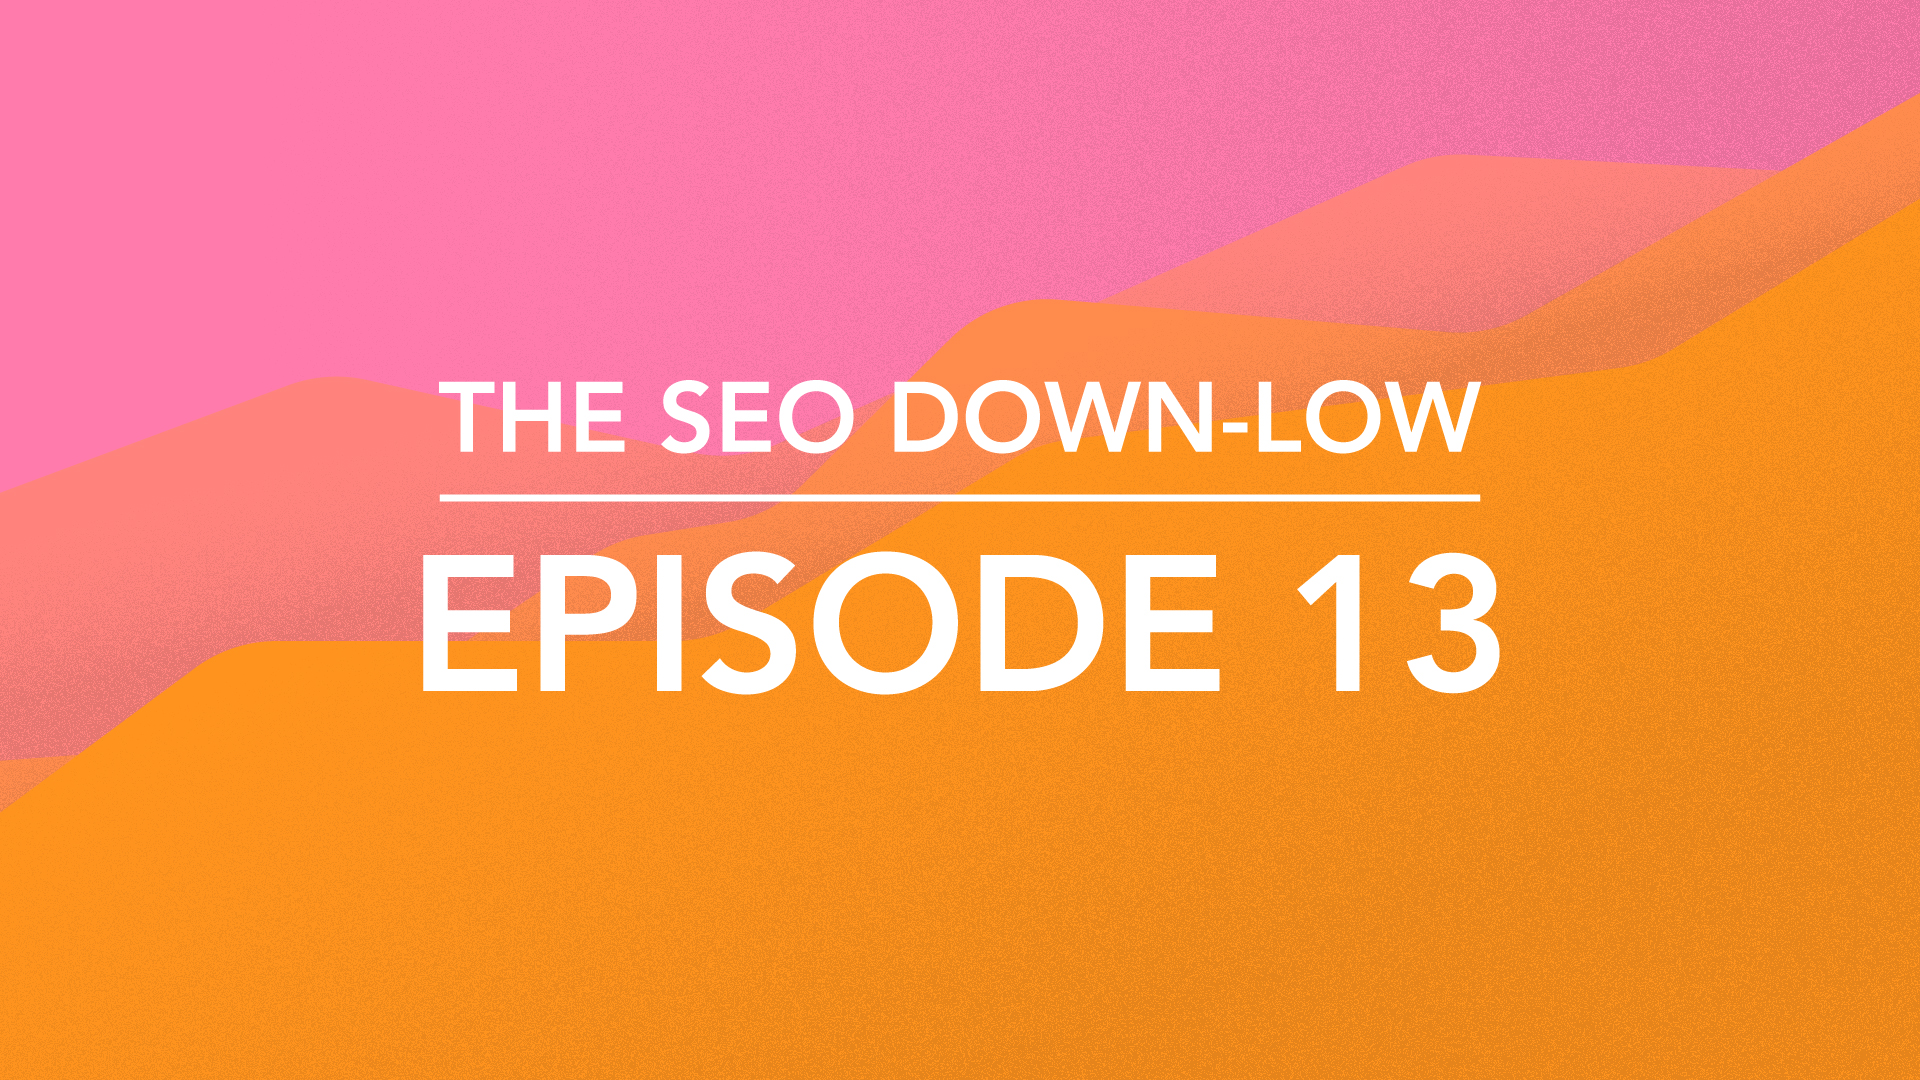 The SEO Down Low Episode 13